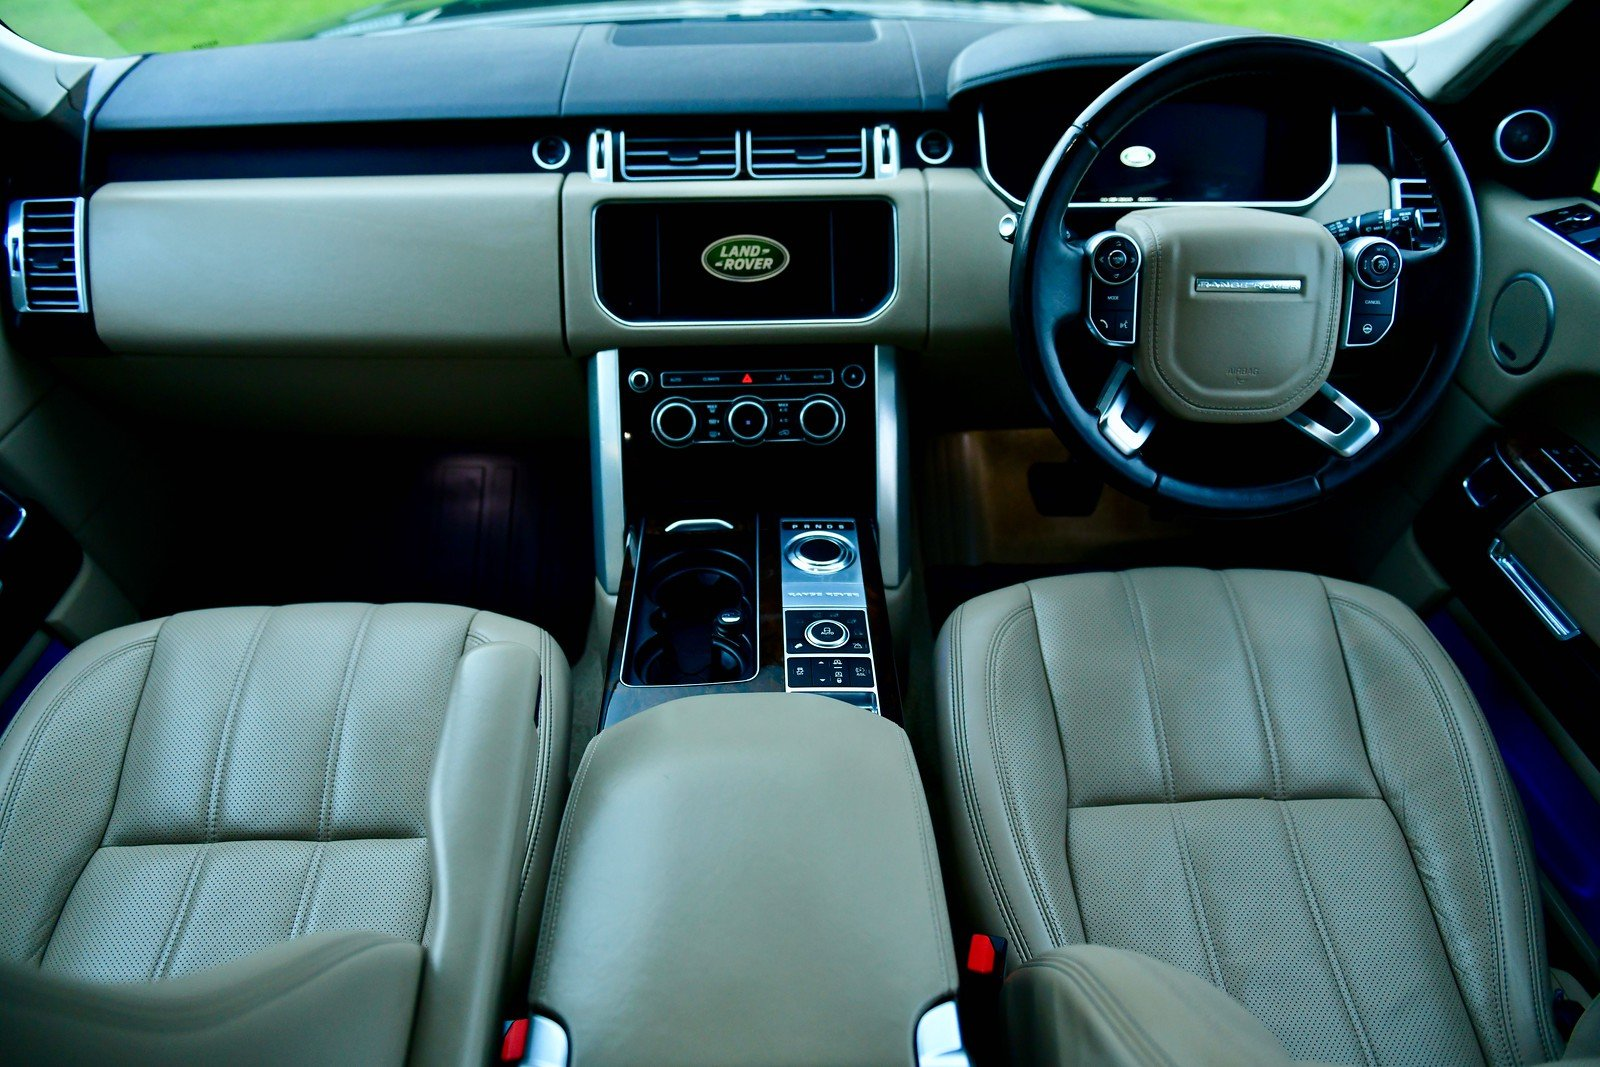 2014  LAND ROVER RANGE ROVER 4.4 SDV8 VOGUE SE 5DR AUTOMATIC SOLD (picture 4 of 6)